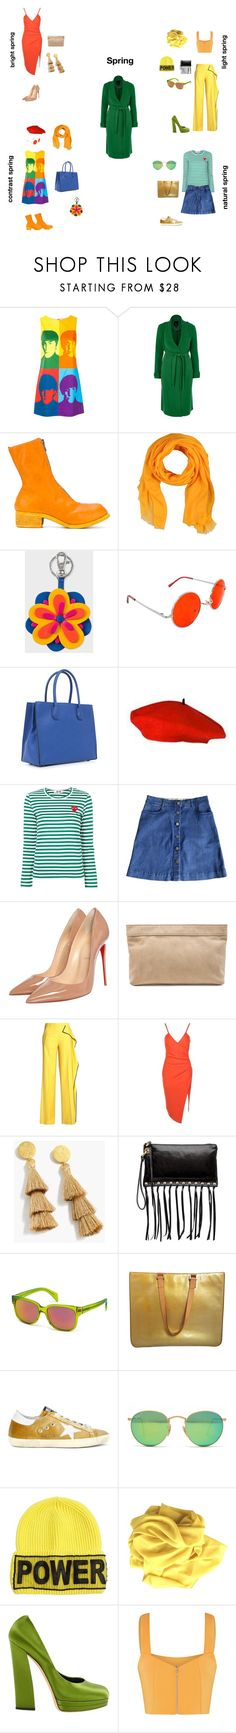 """Весенний цветотип"" by gubinakaterina on Polyvore featuring мода, Alice + Olivia, River Island, Guidi, M Missoni, PS Paul Smith, SWG, MICHAEL Michael Kors, STELLA McCARTNEY и Christian Louboutin"